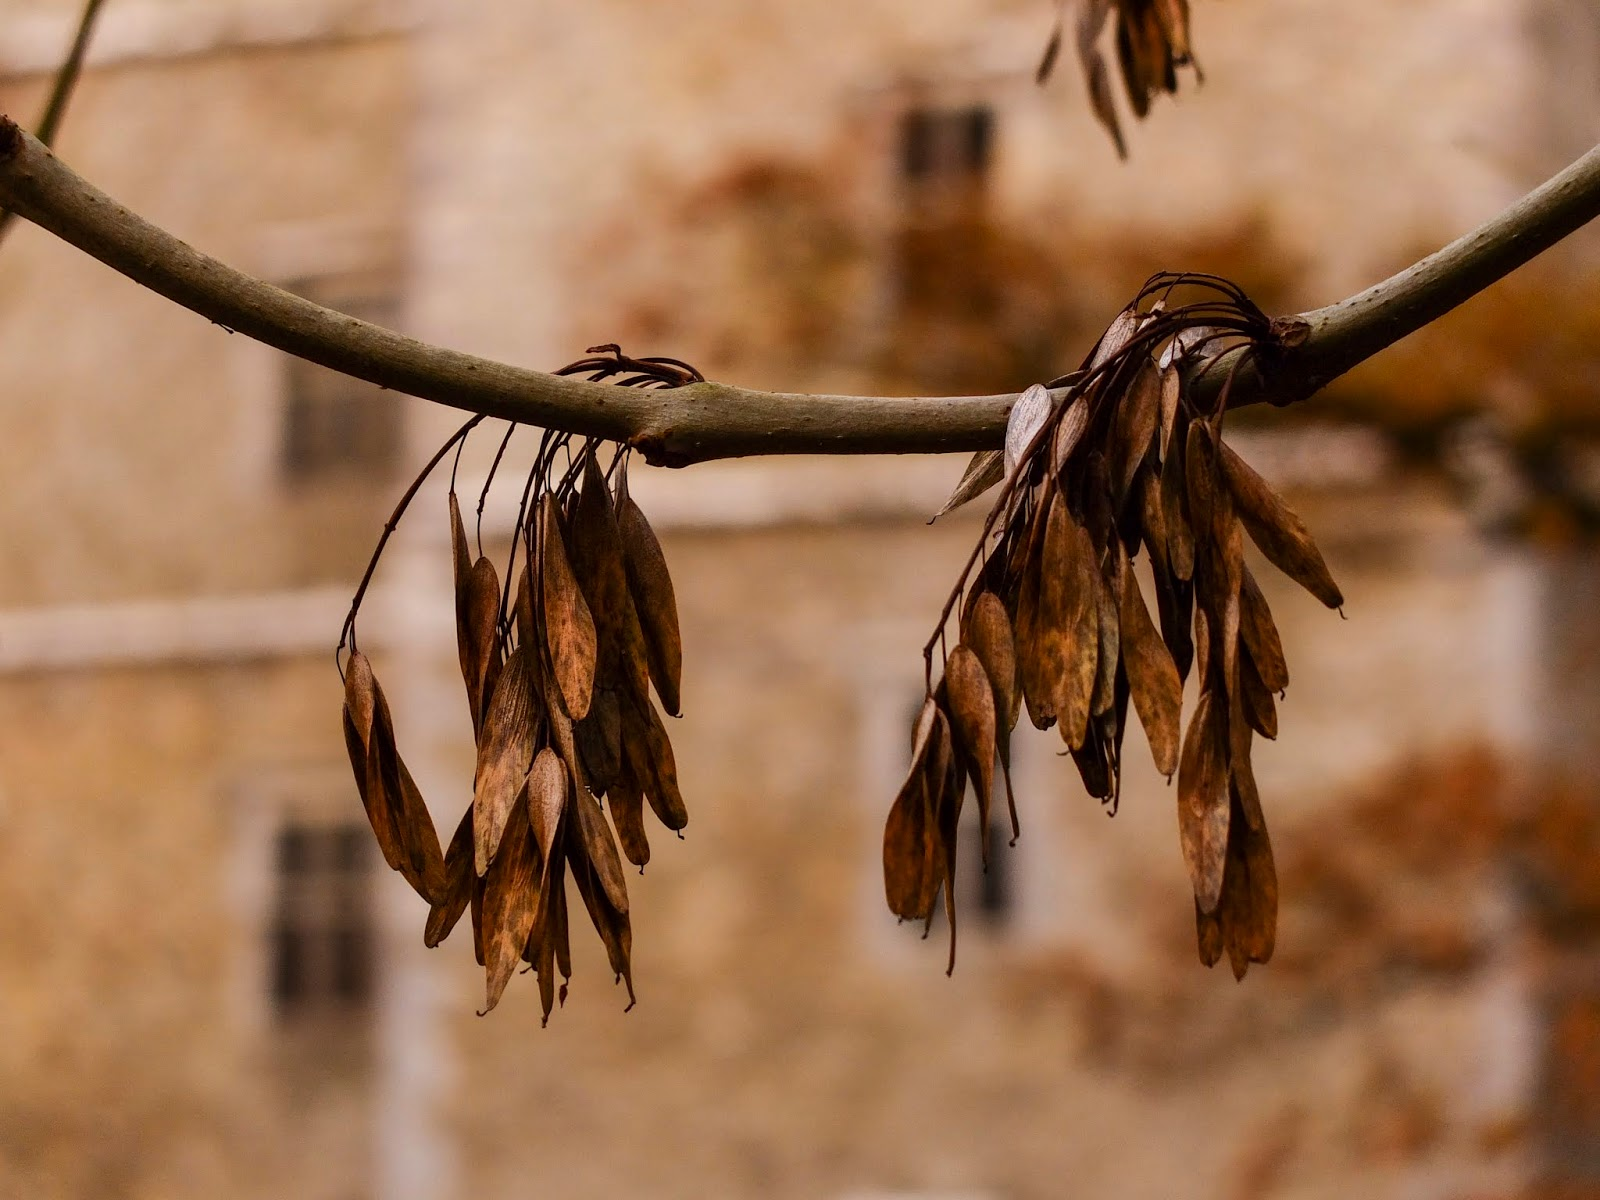 Close up of Ash tree seeds hanging on branches with Kanturk Castle in the background.